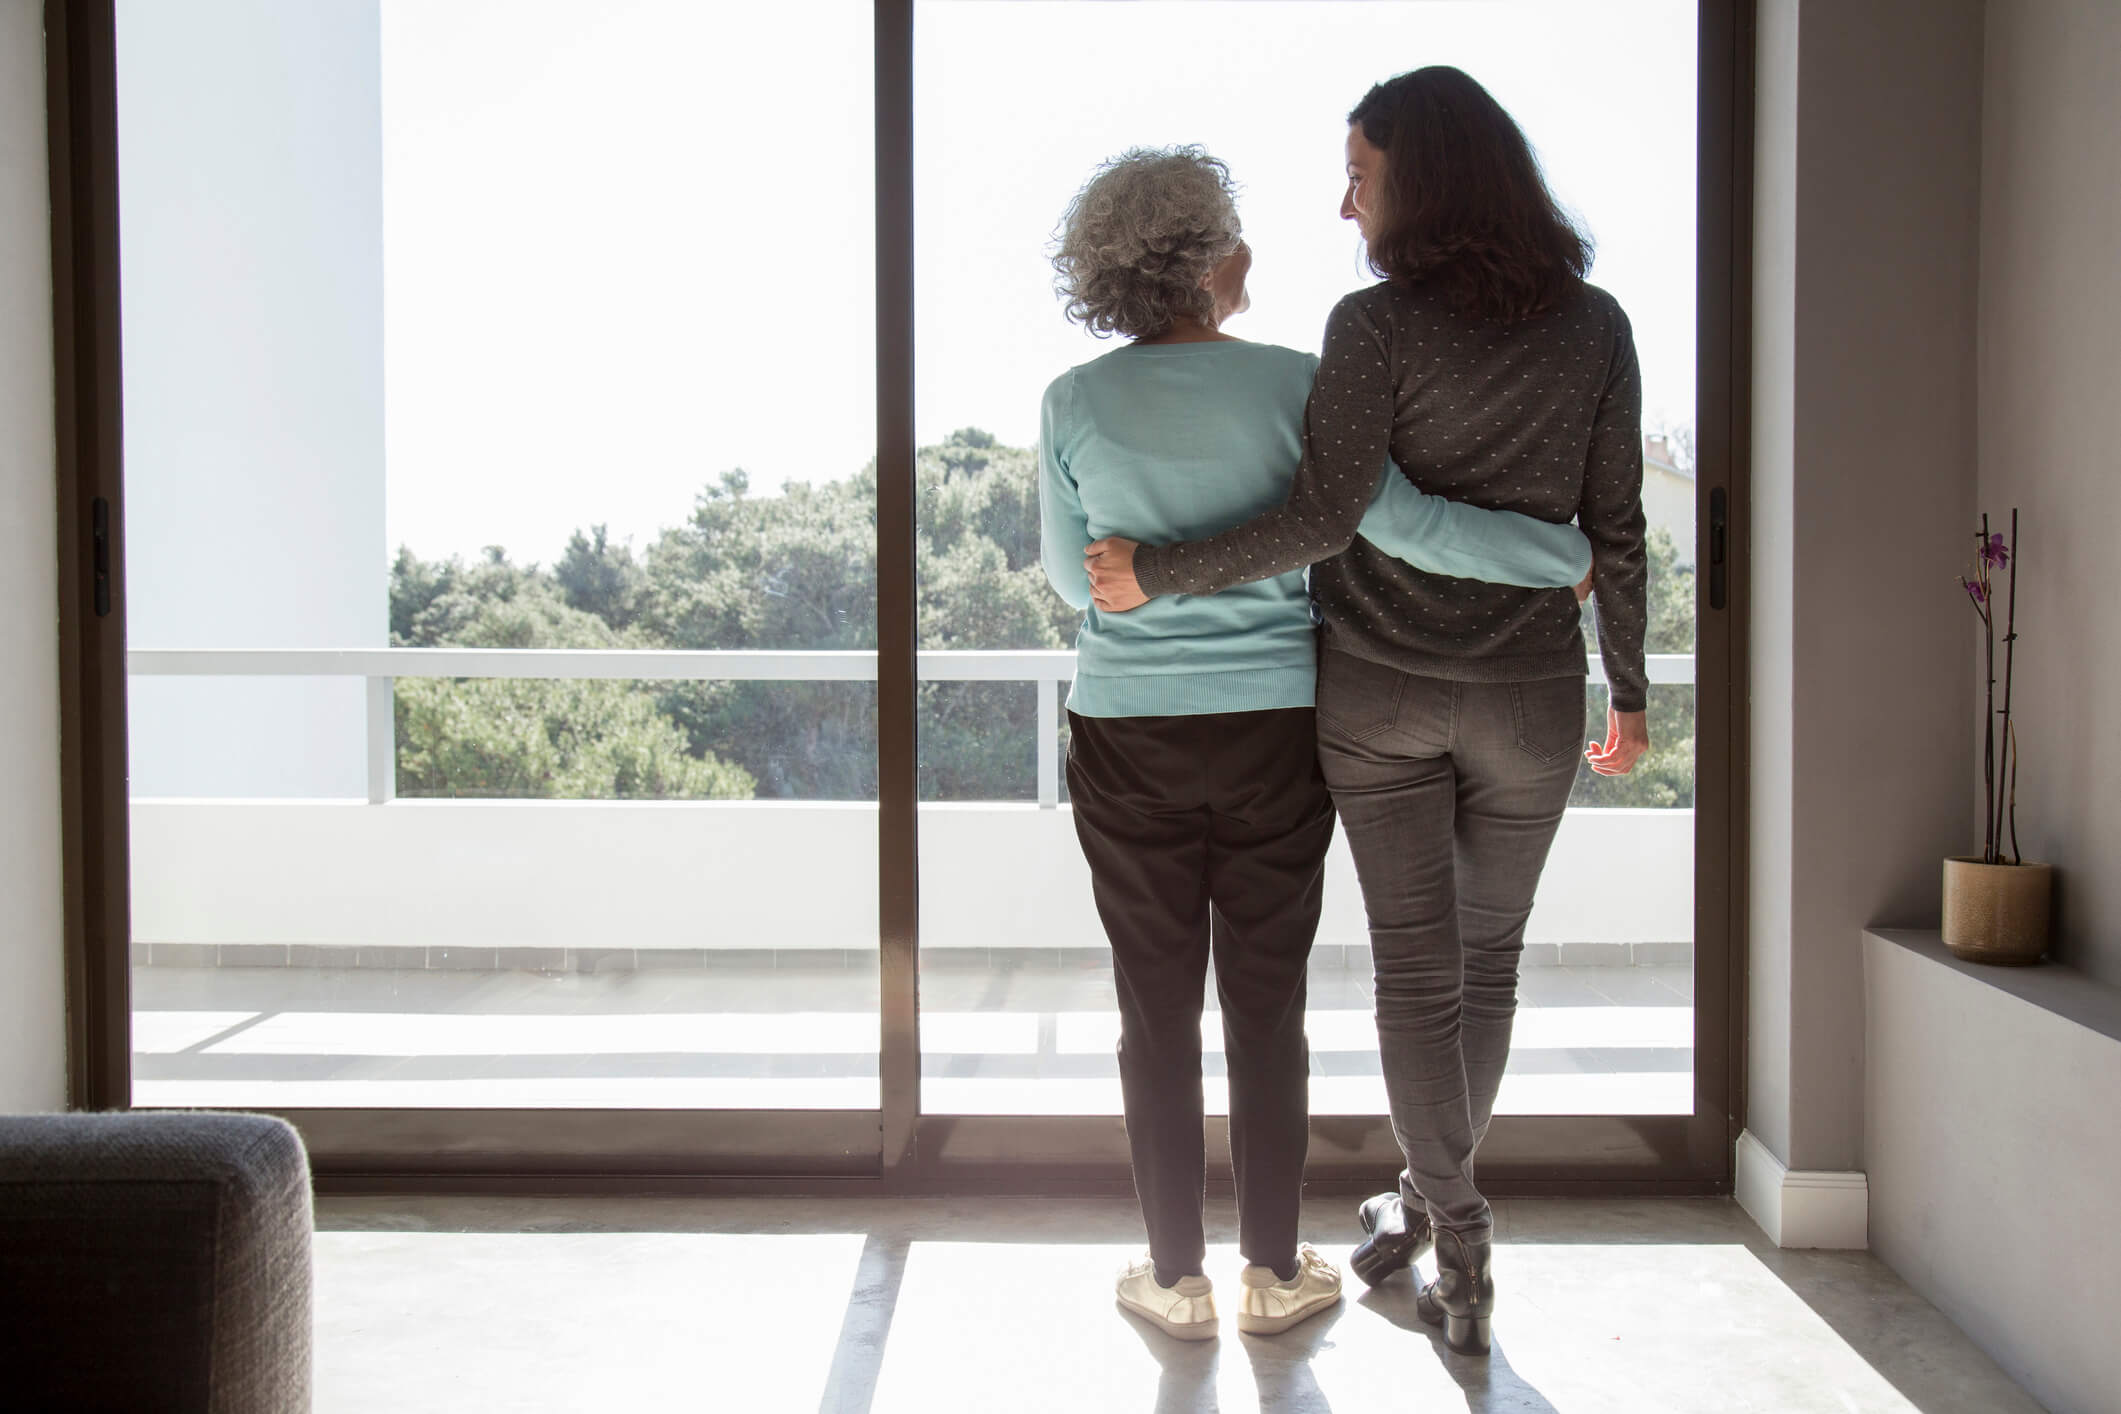 What Are the Signs of Normal Aging vs. Dementia?